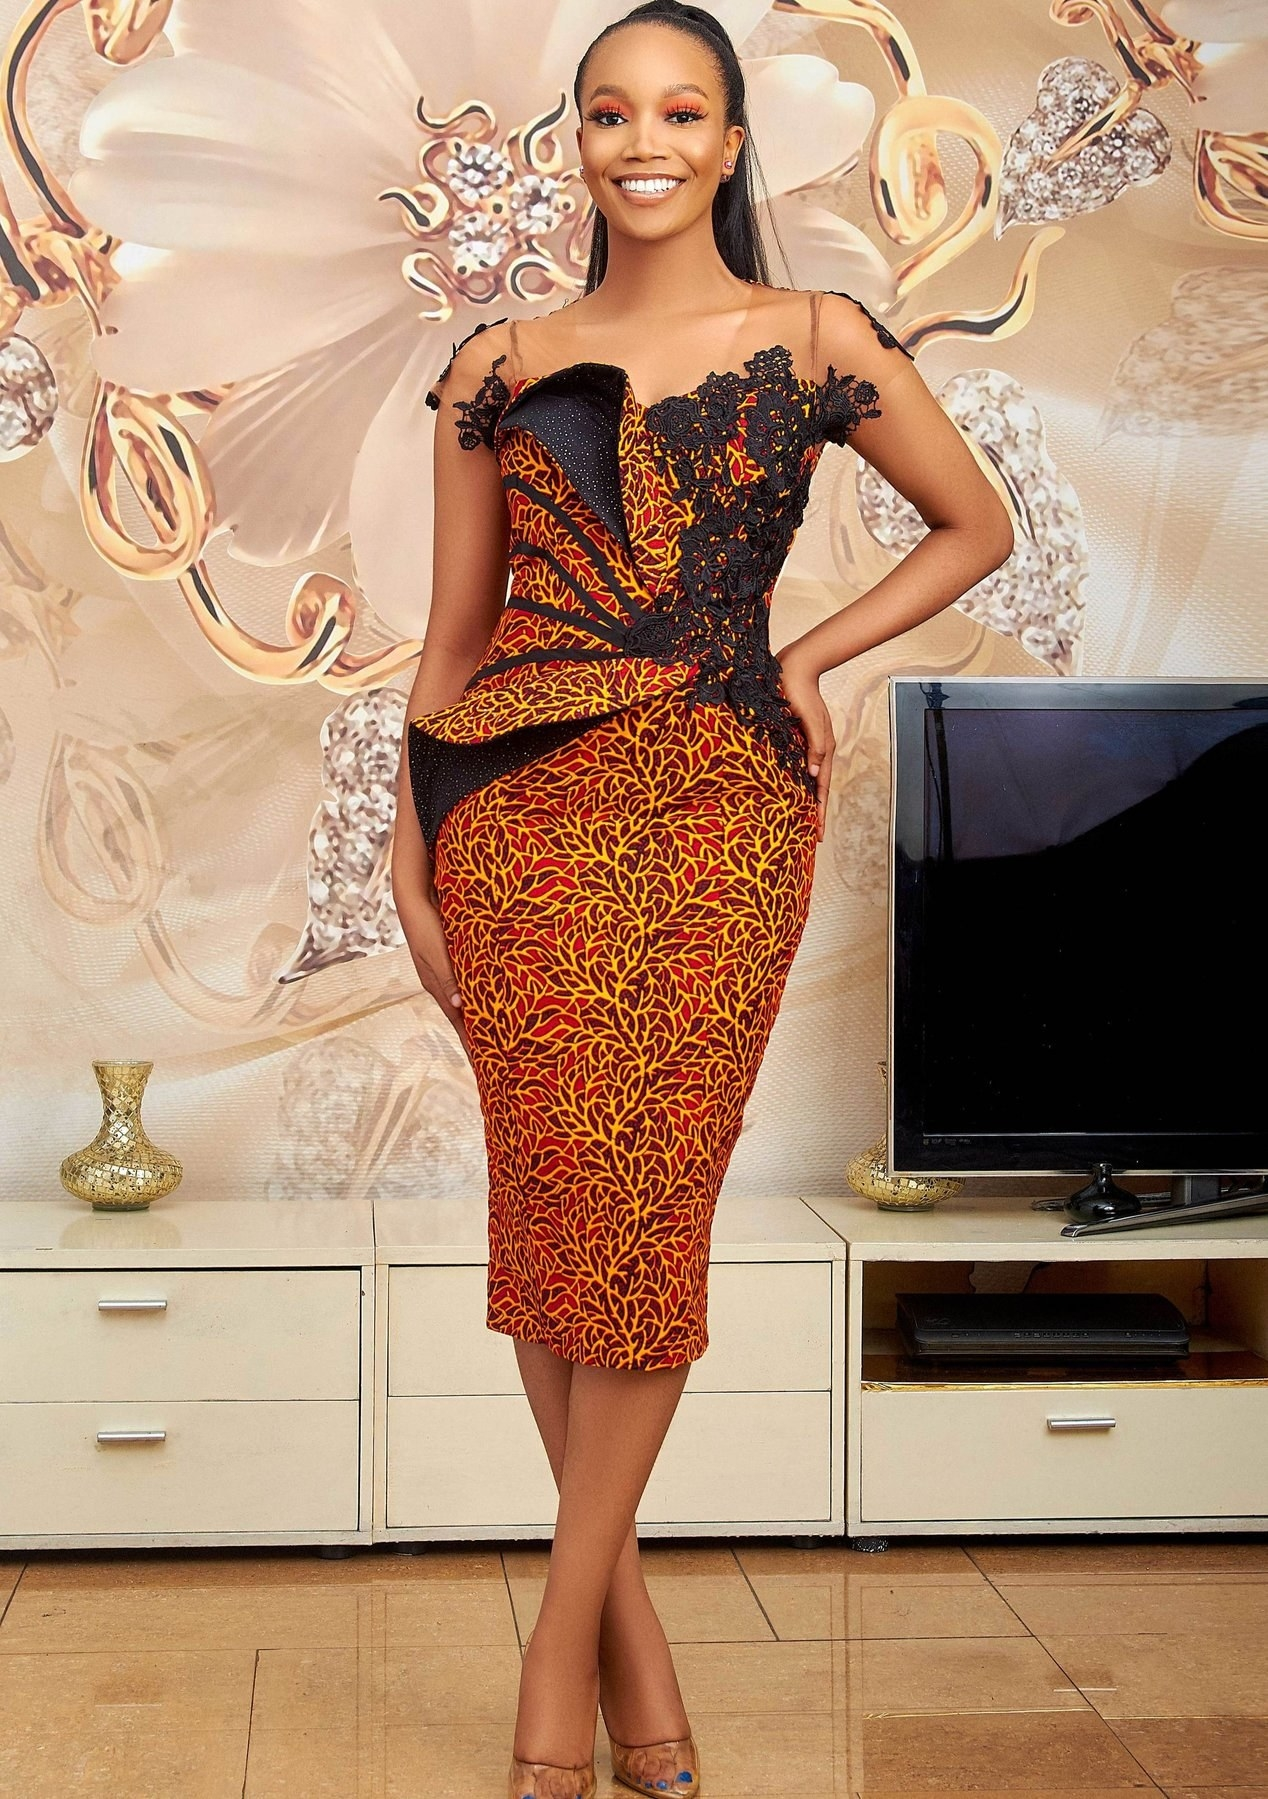 model wearing a red and dark orange leafy Ankara print dress with black lace at the top